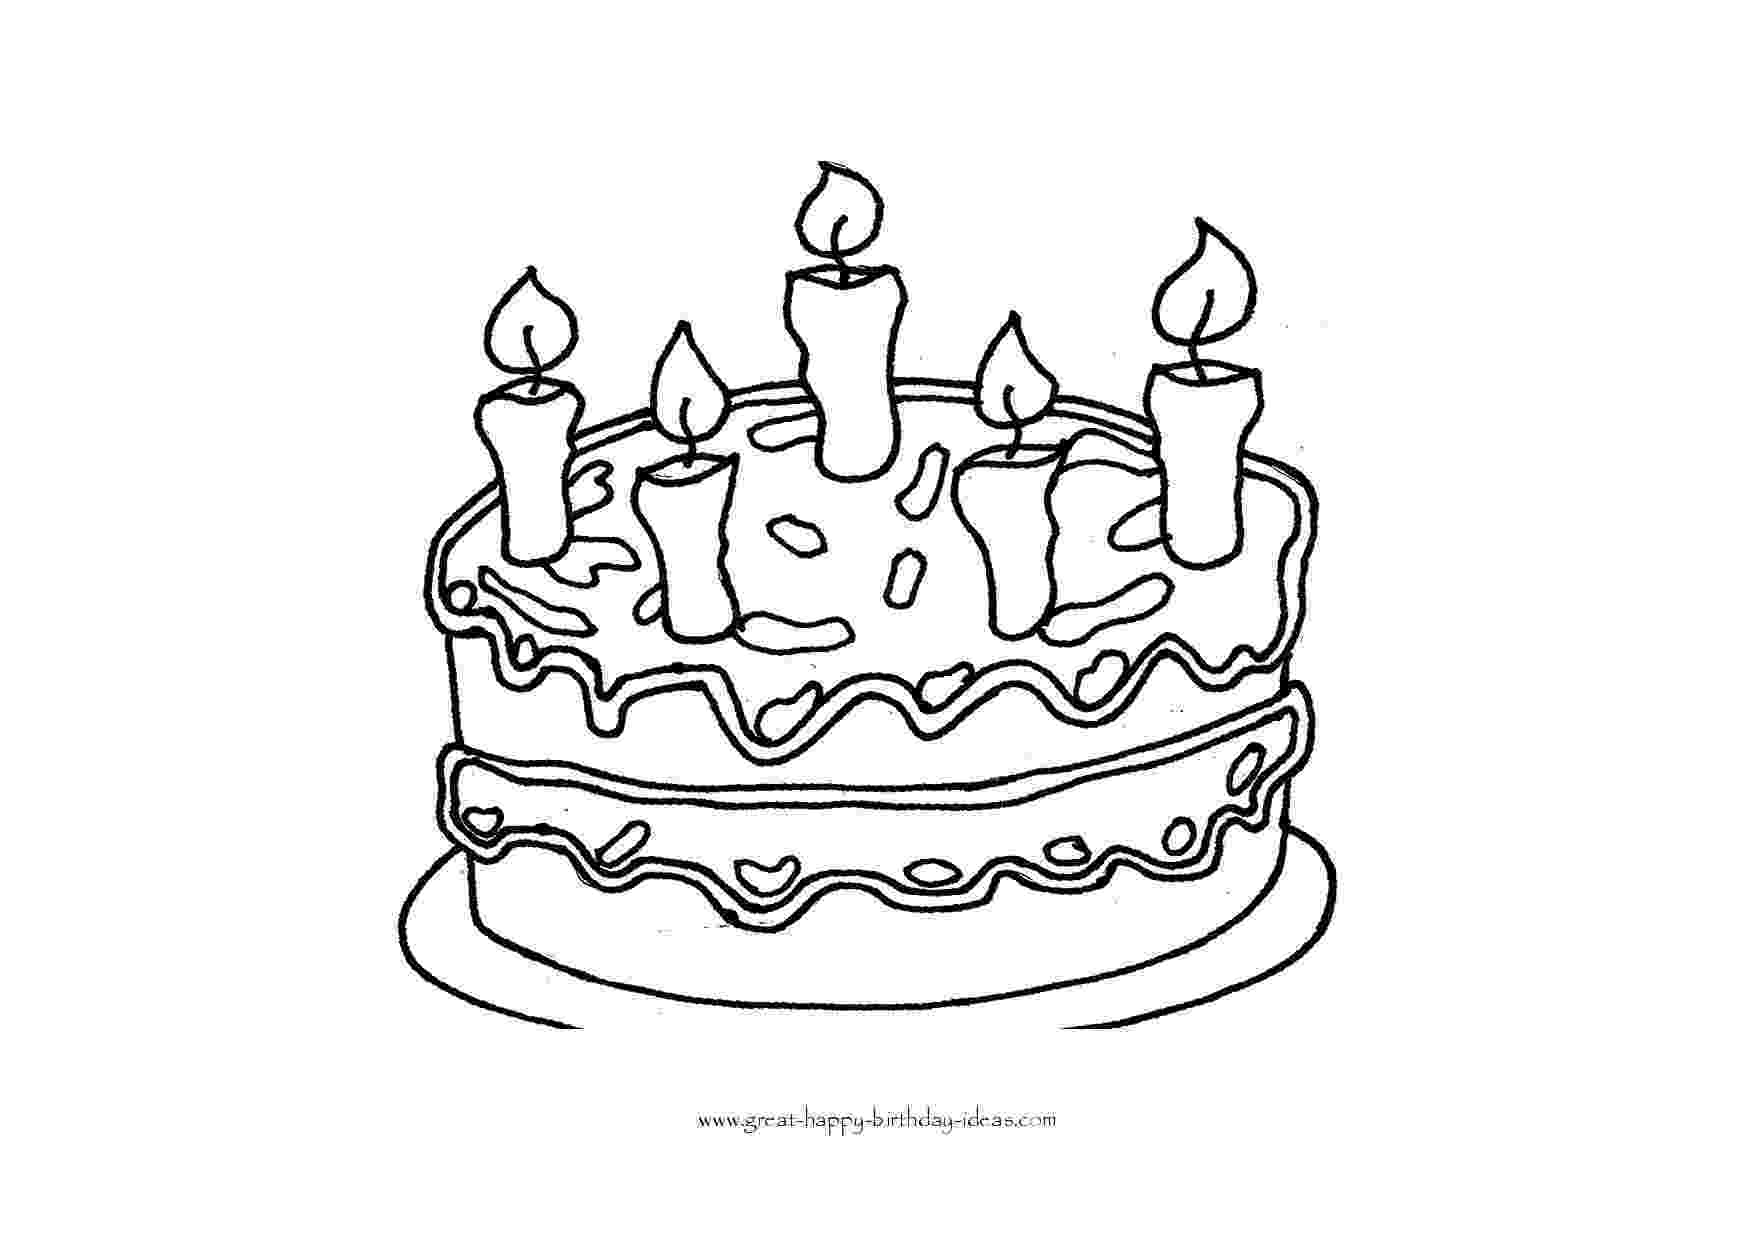 printable colouring birthday pictures free printable birthday cake coloring pages for kids birthday pictures colouring printable